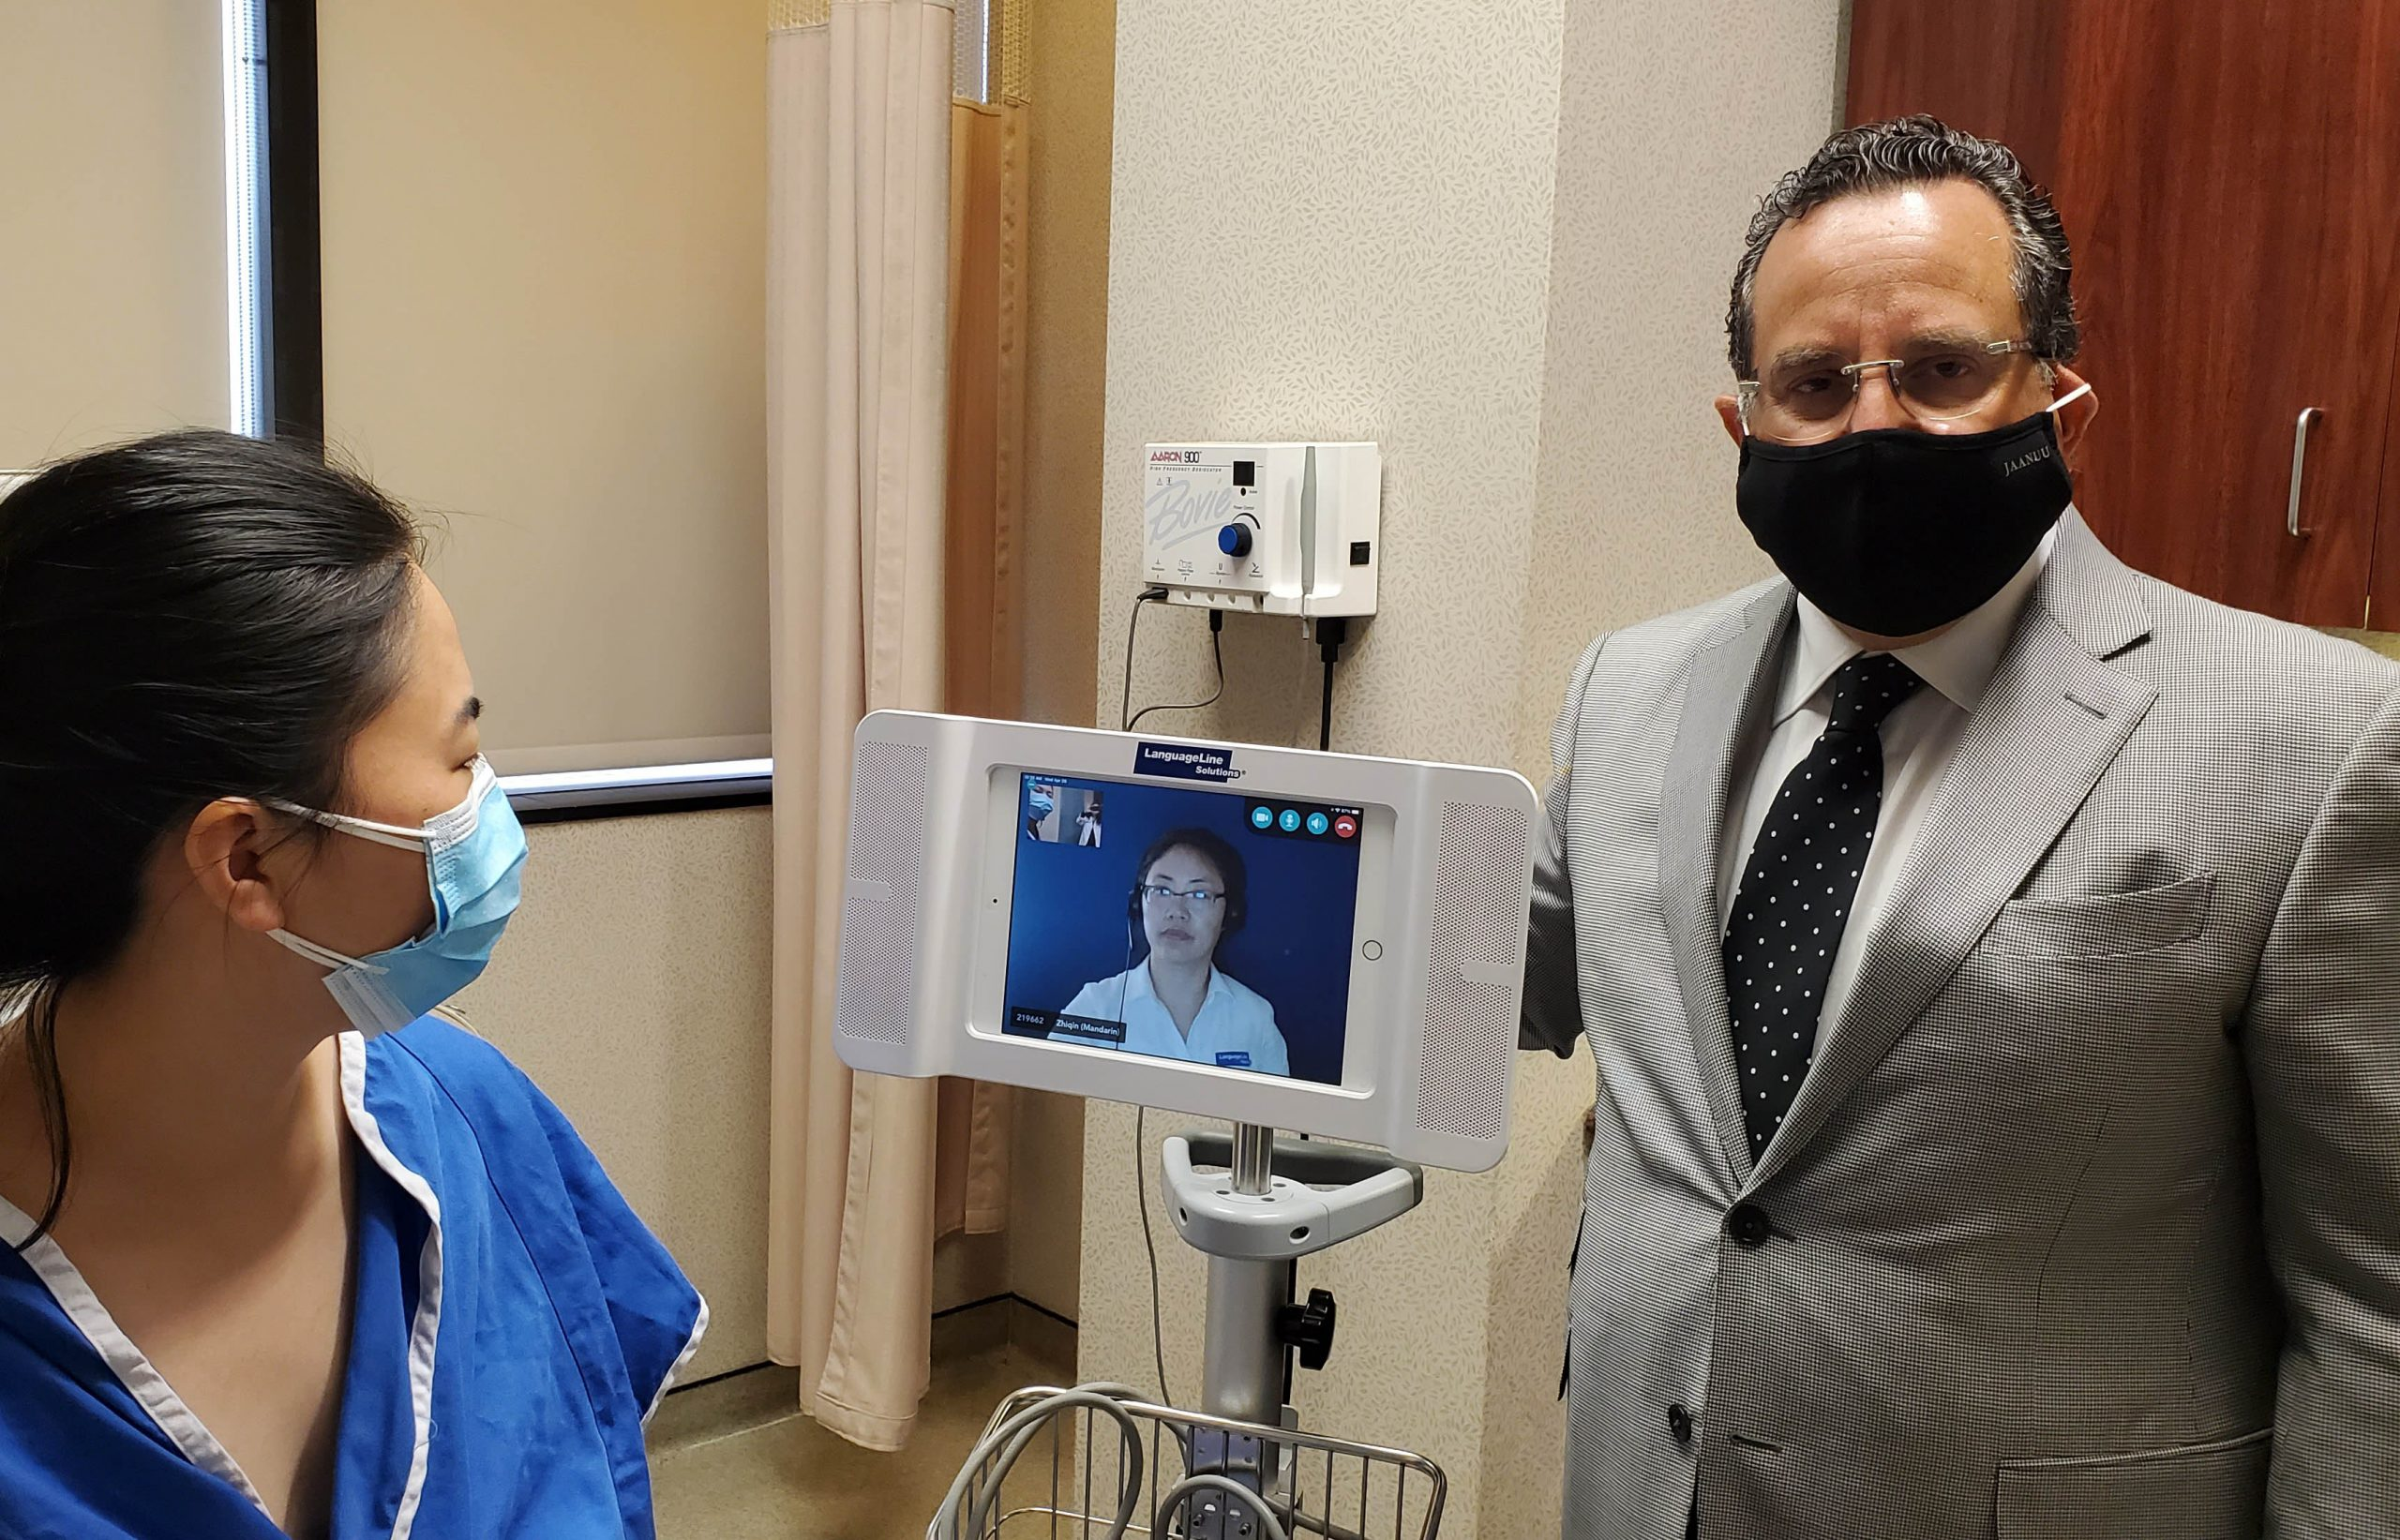 Dr. Feingold with LanguageLine Translator Machine and Patient